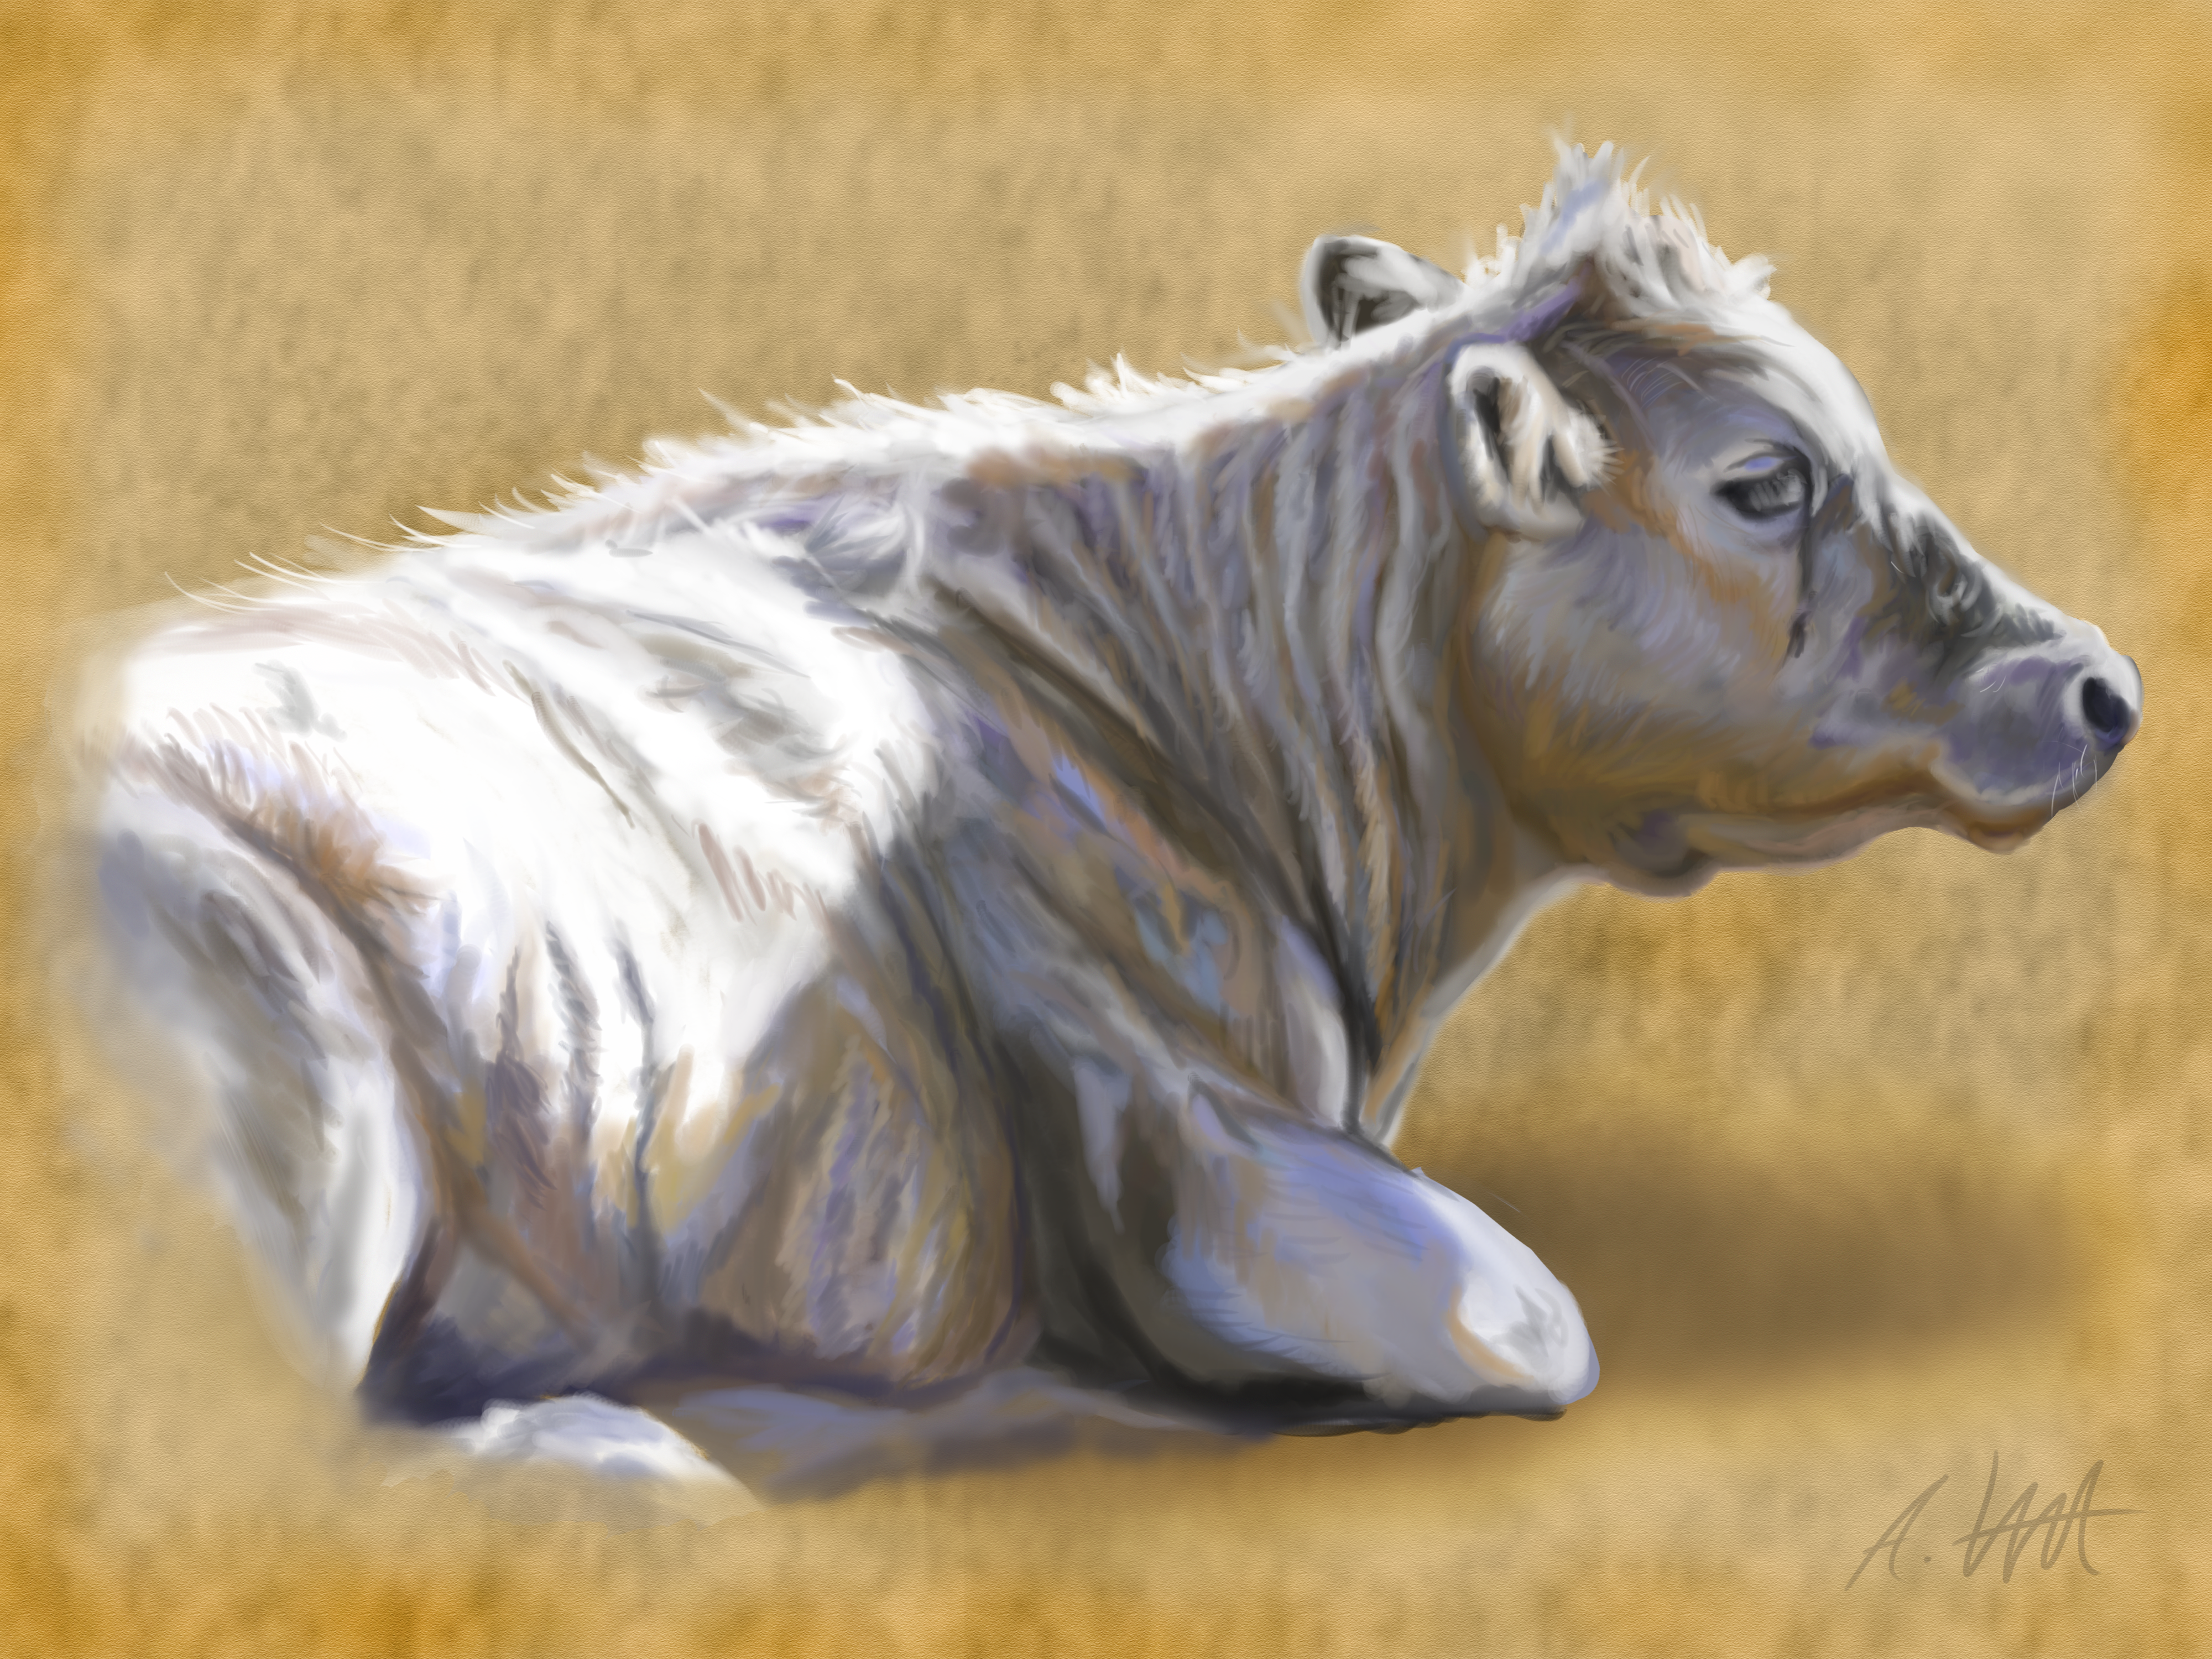 Another Cow